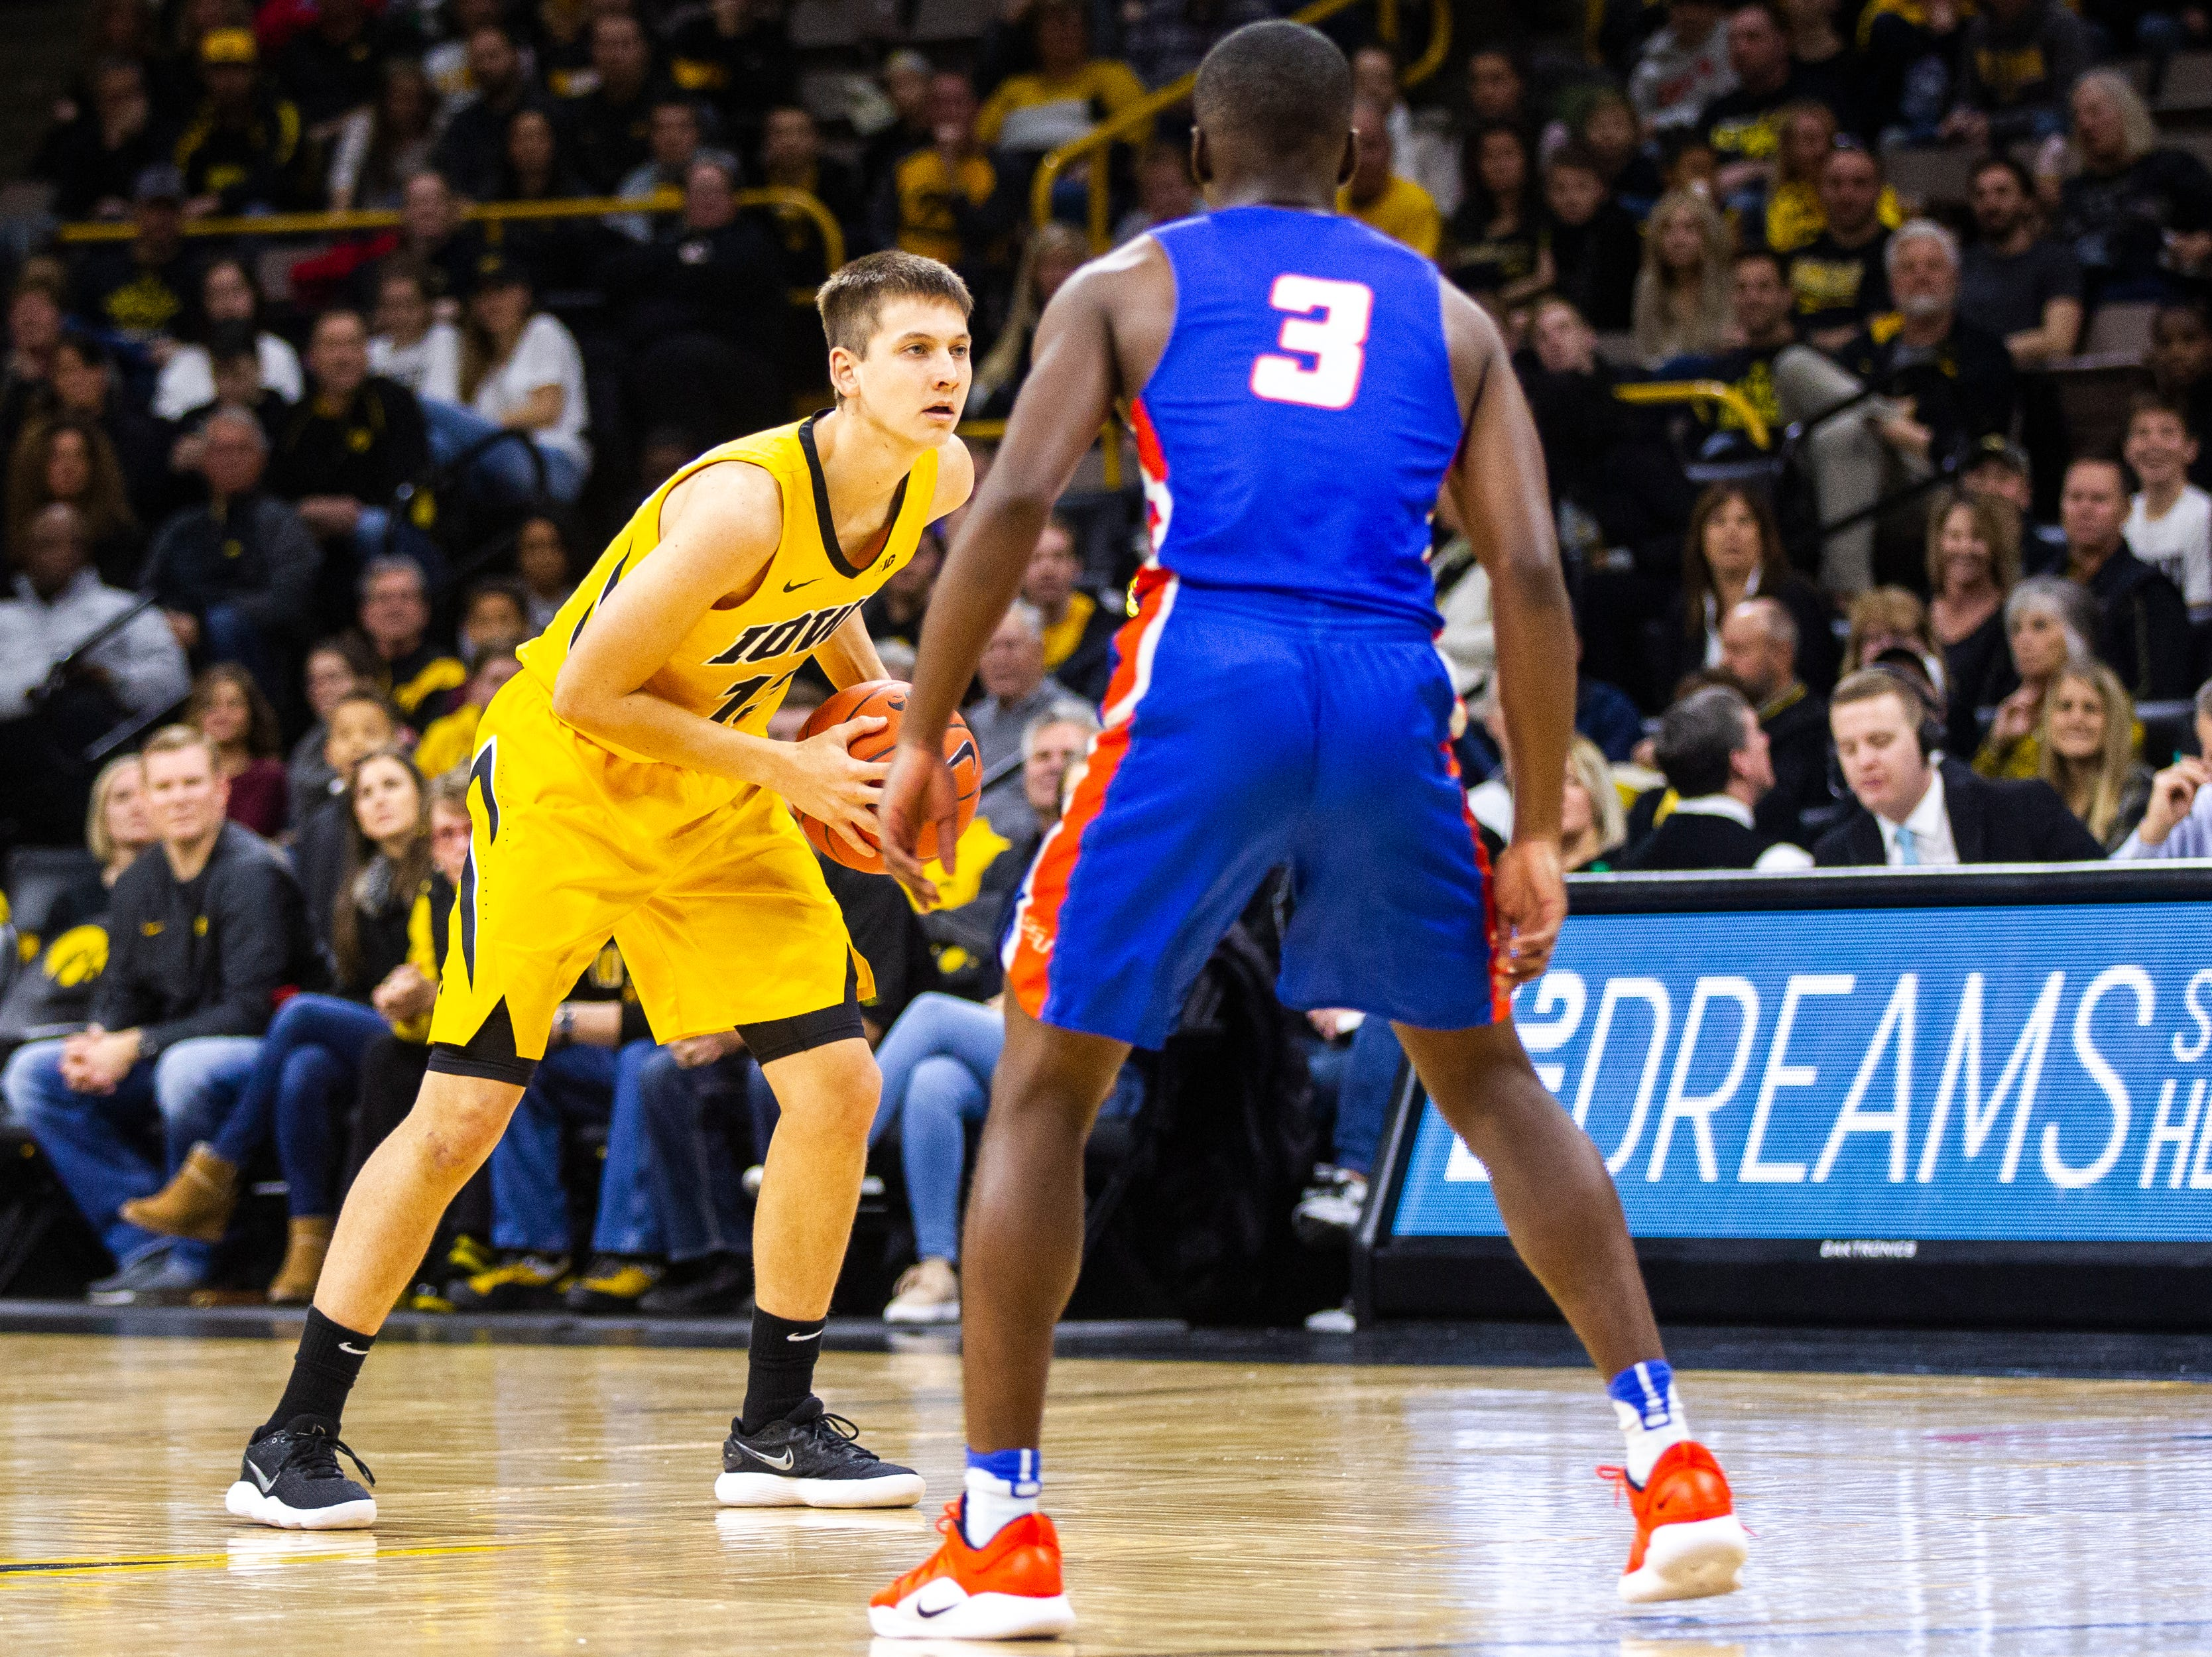 Iowa guard Austin Ash (13) looks to pass during a NCAA men's basketball game on Saturday, Dec. 22, 2018, at Carver-Hawkeye Arena in Iowa City.